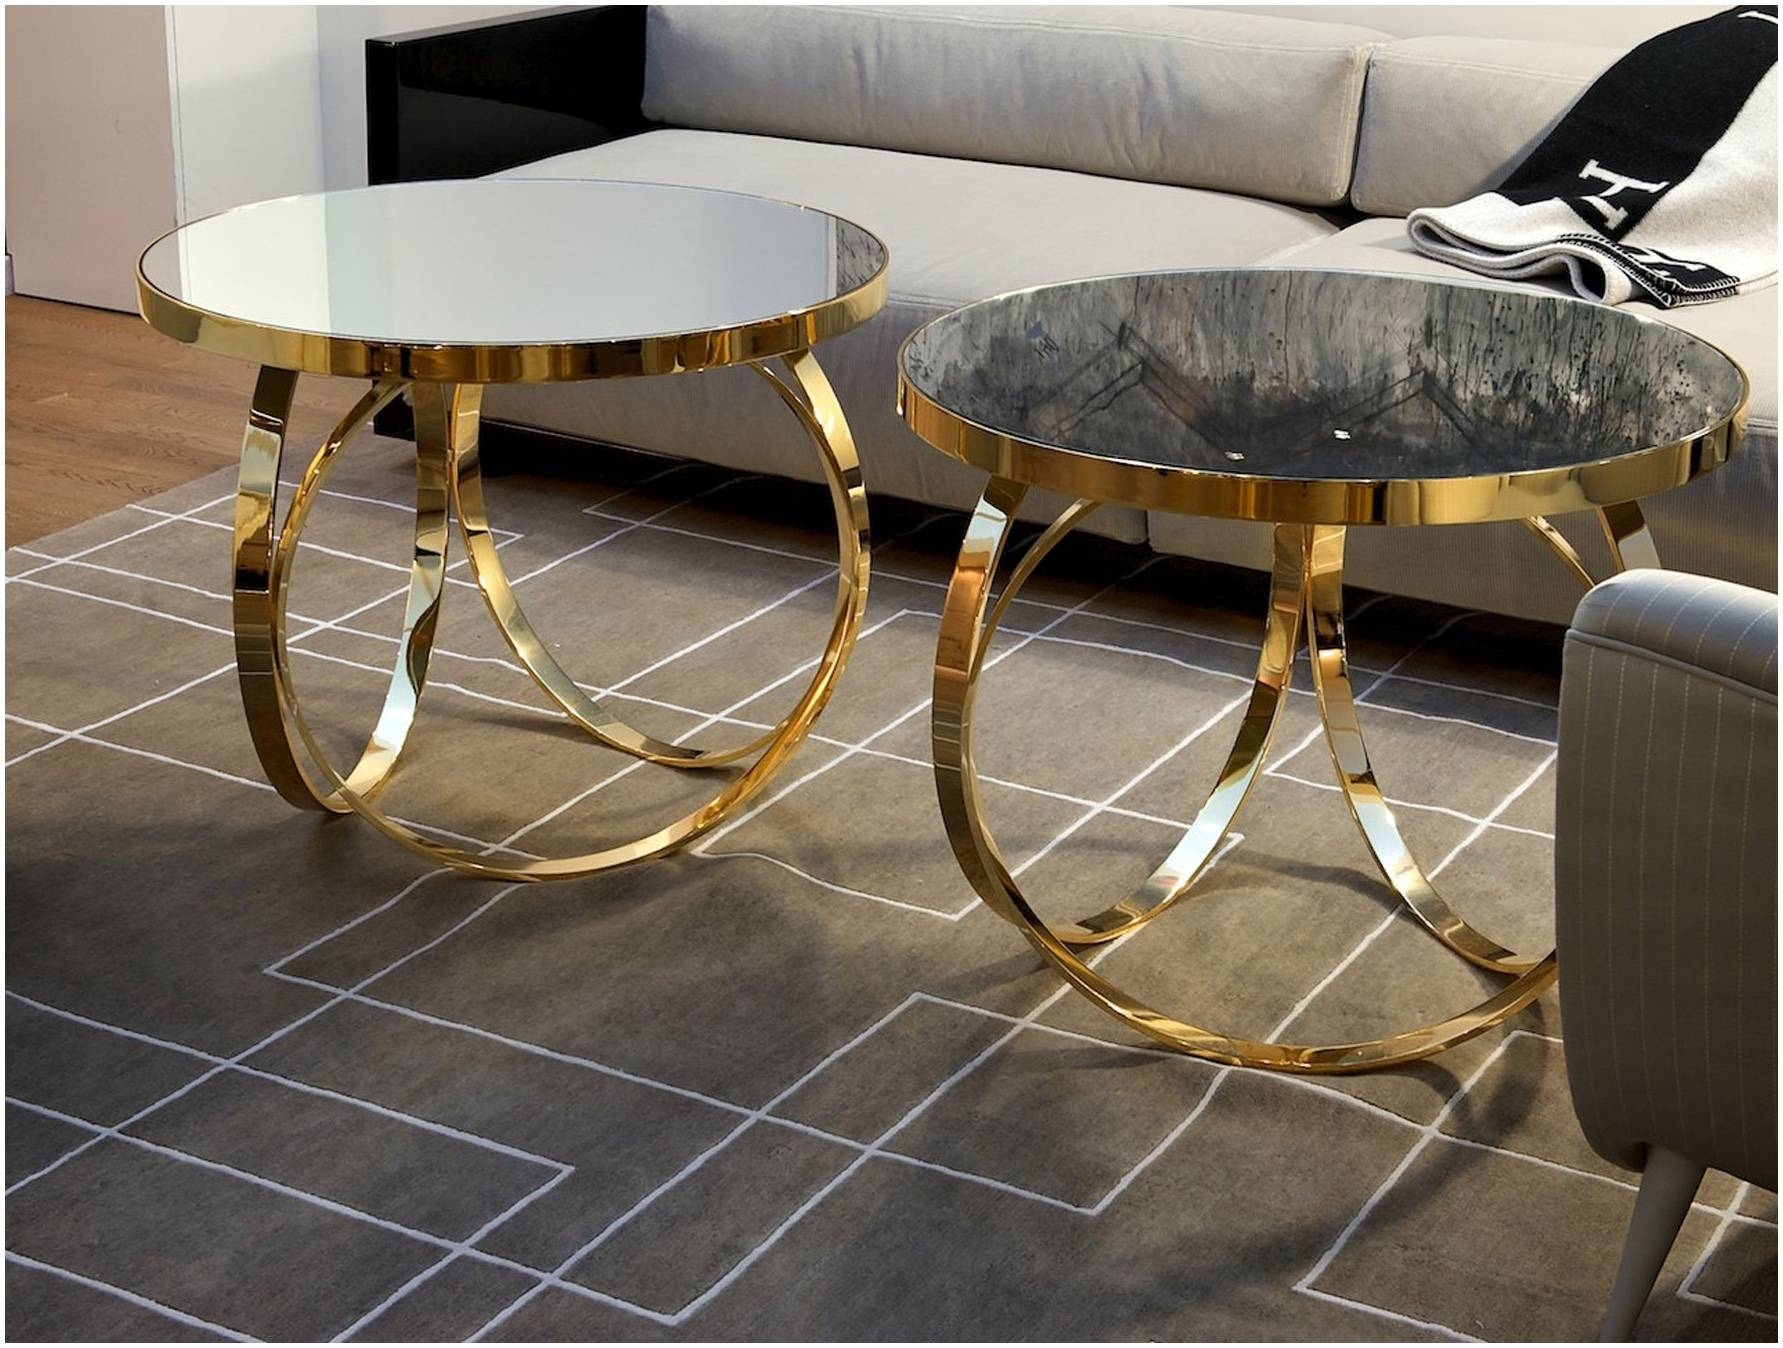 Pretty Round Gold Coffee Table – Cocinacentral.co regarding Glass Gold Coffee Tables (Image 23 of 30)